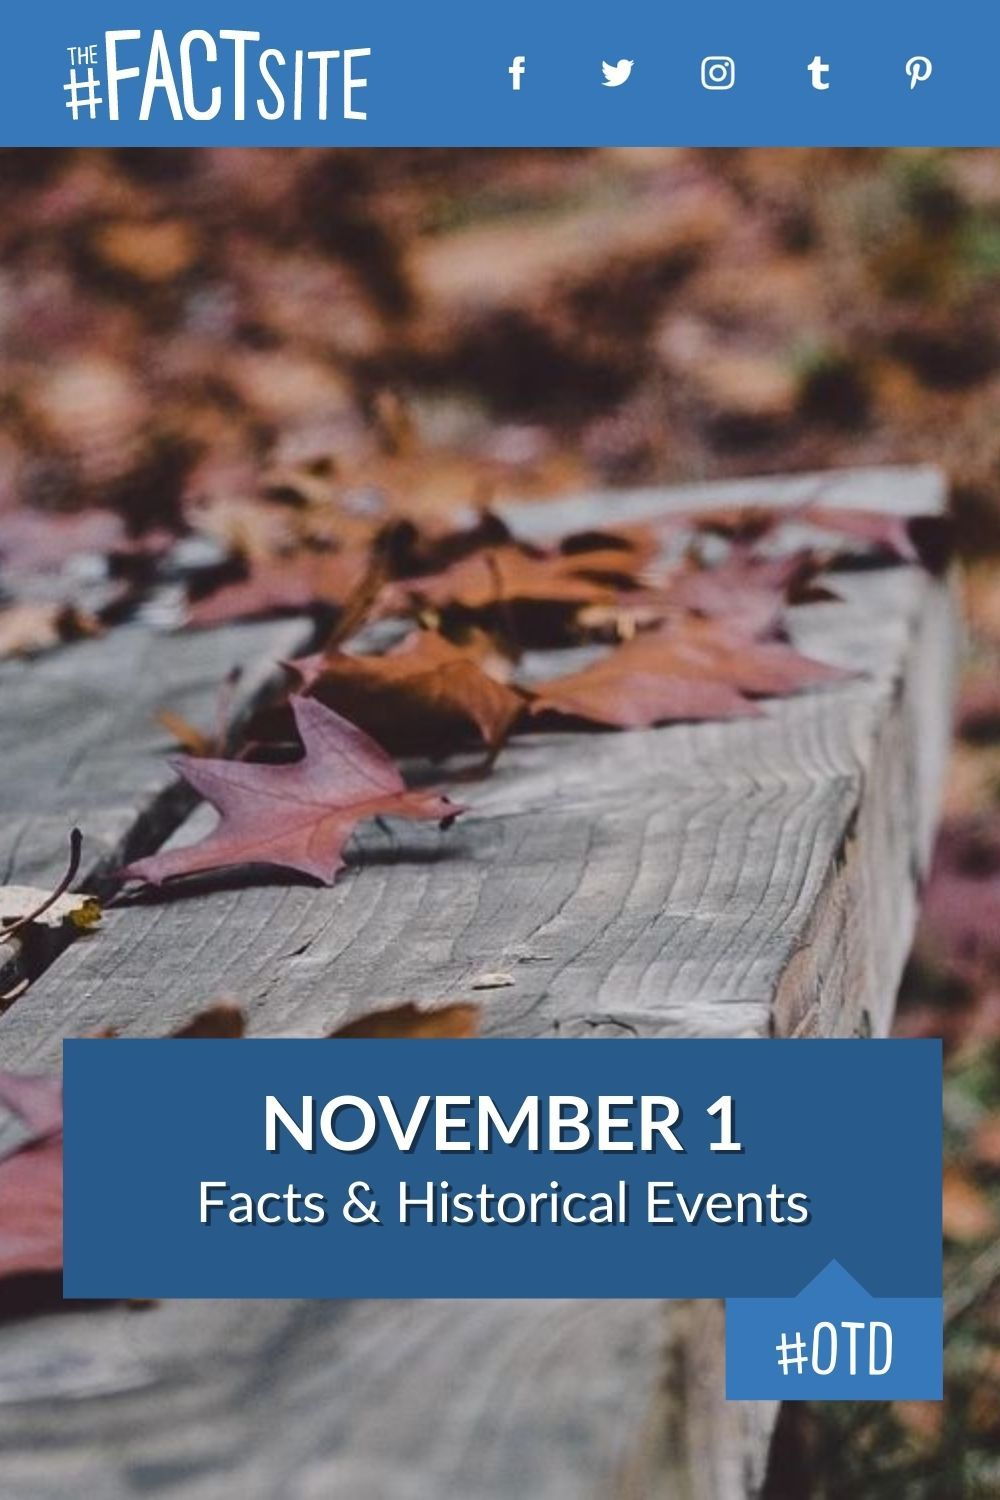 Facts & Historic Events That Happened on November 1